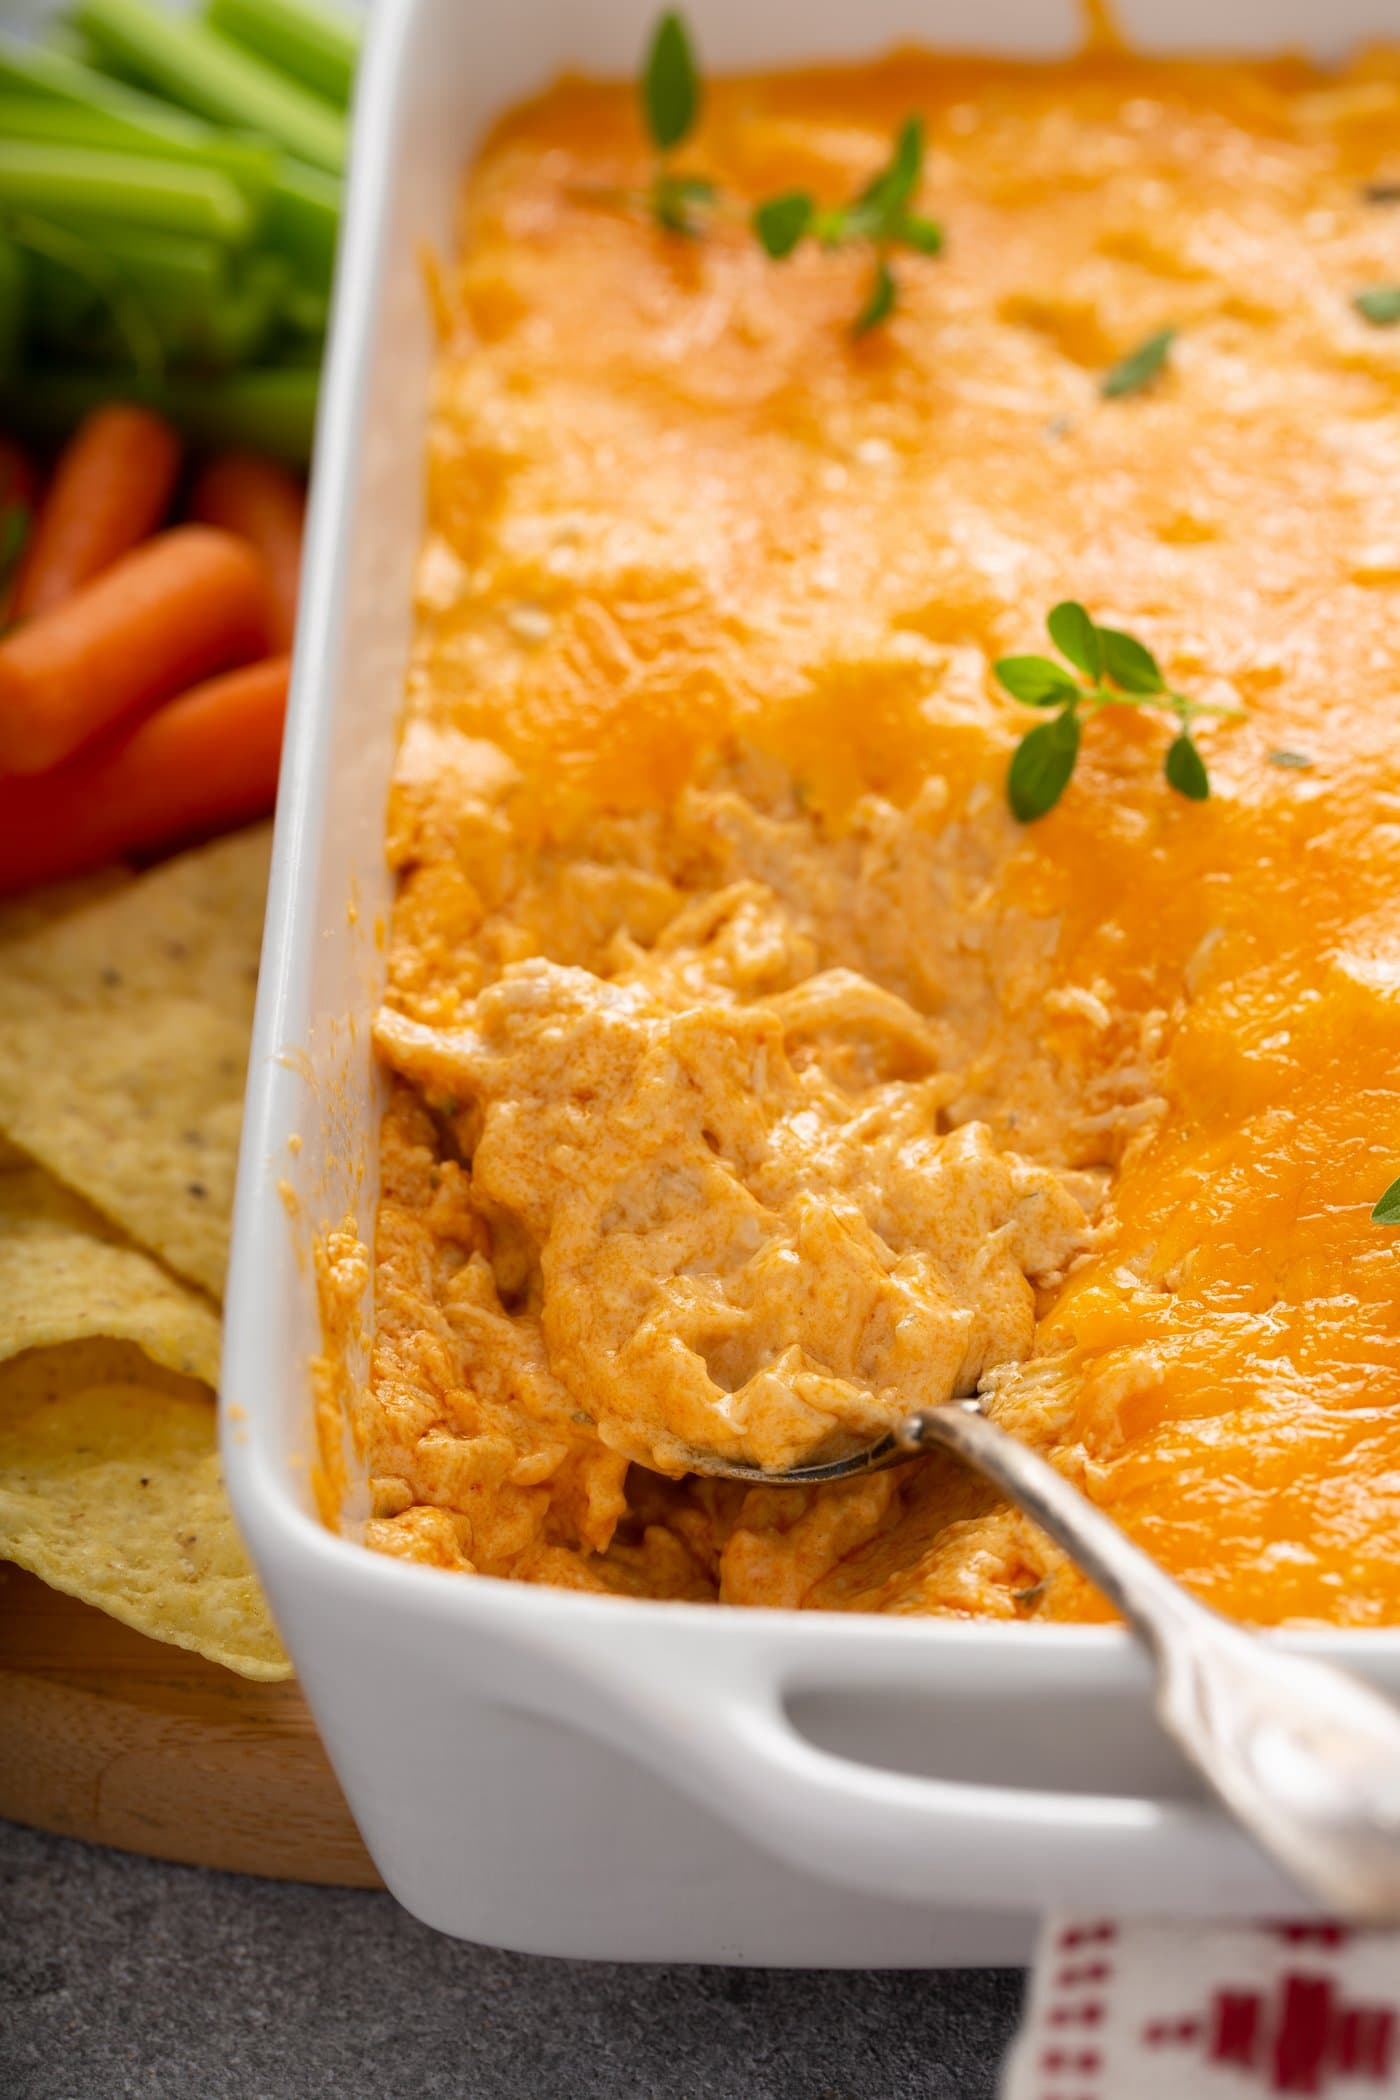 A casserole dish of buffalo chicken dip. A spoon is lifting a scoop of dip. There is shredded chicken in buffalo sauce with melted cheese on top. A few fresh parsley leaves are sprinkled on top. Chips and carrots are next to the dish of dip.